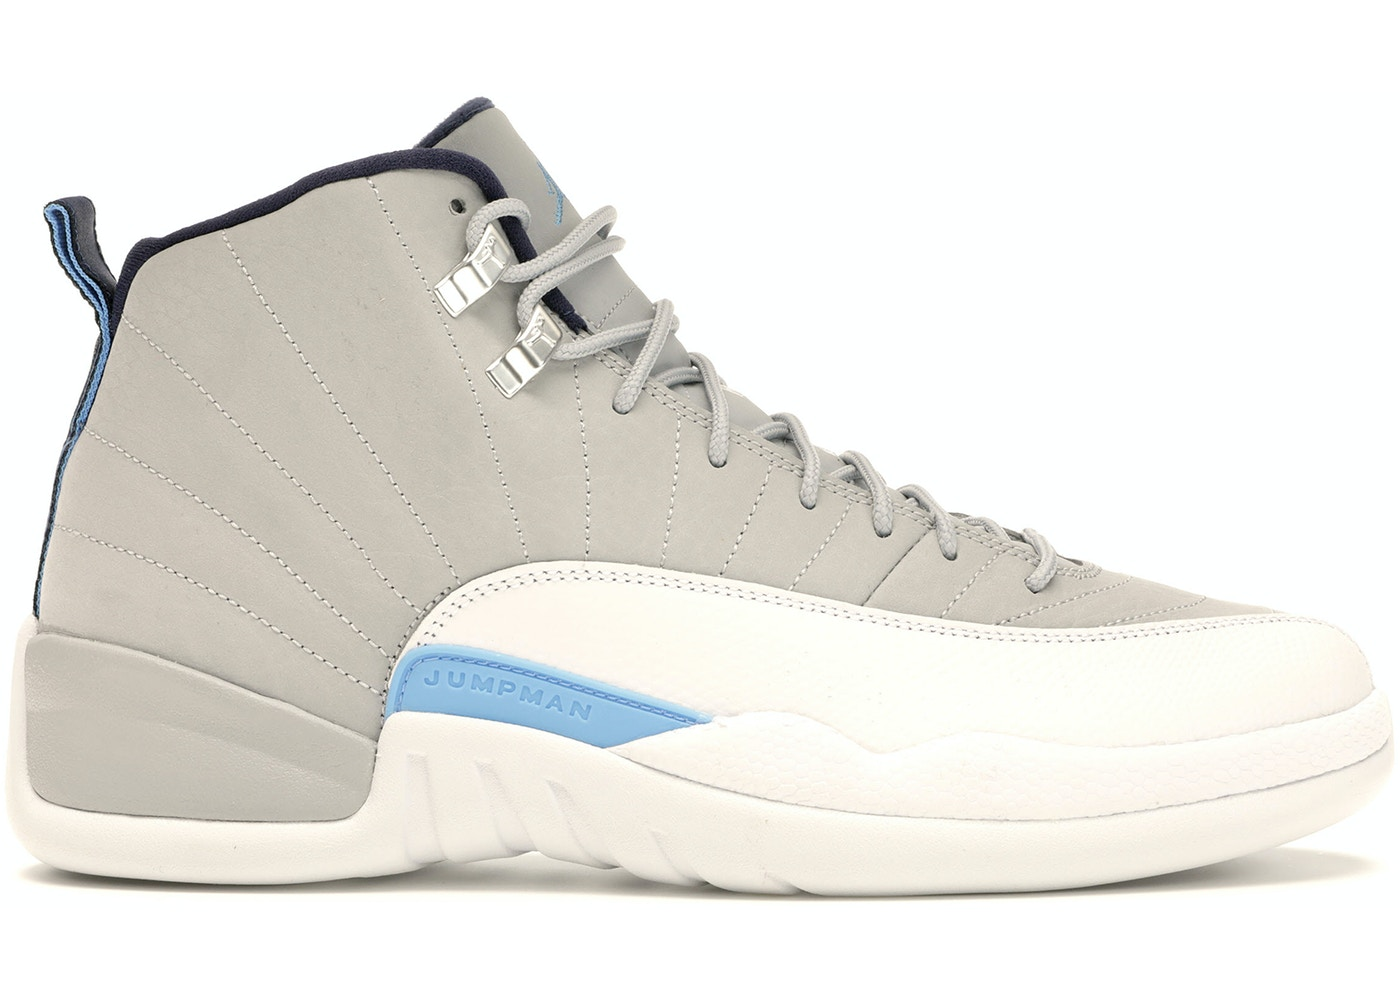 online store 4ebc8 843d0 Jordan 12 Retro Grey University Blue